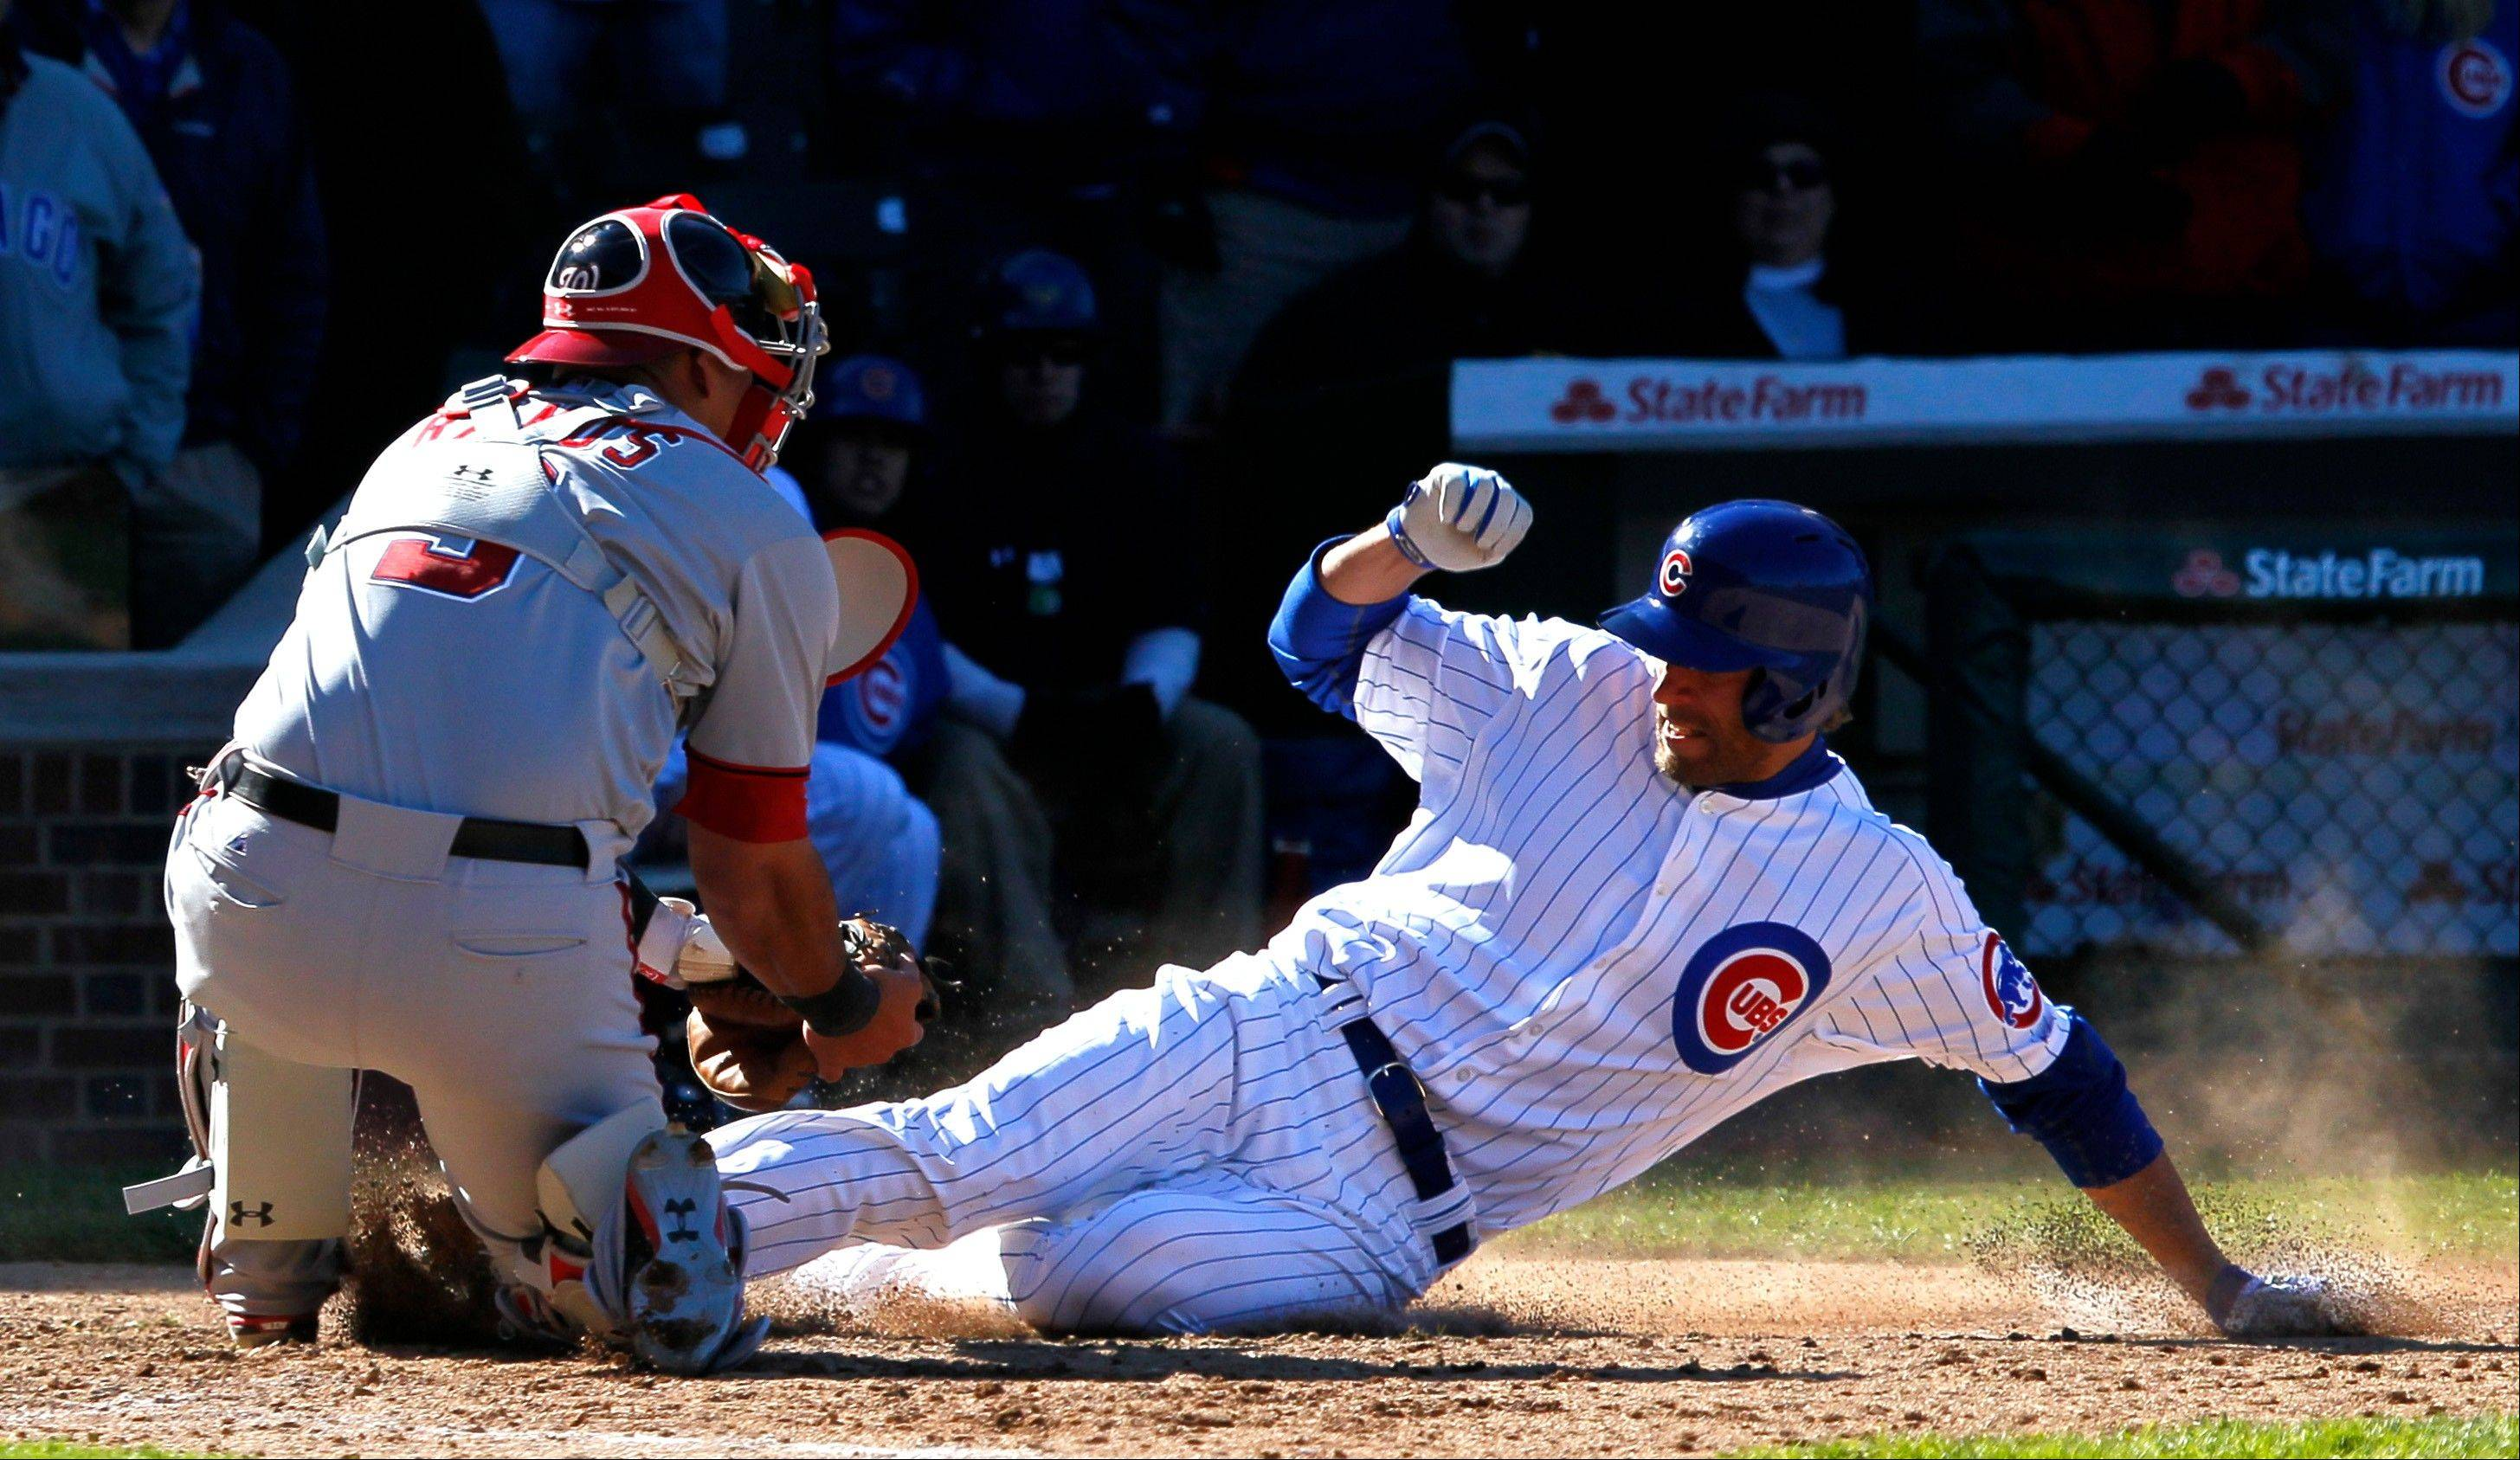 Down by a run in the ninth inning, Cubs pinch runner Joe Mather is tagged out trying to score on sharply hit ball to third base.